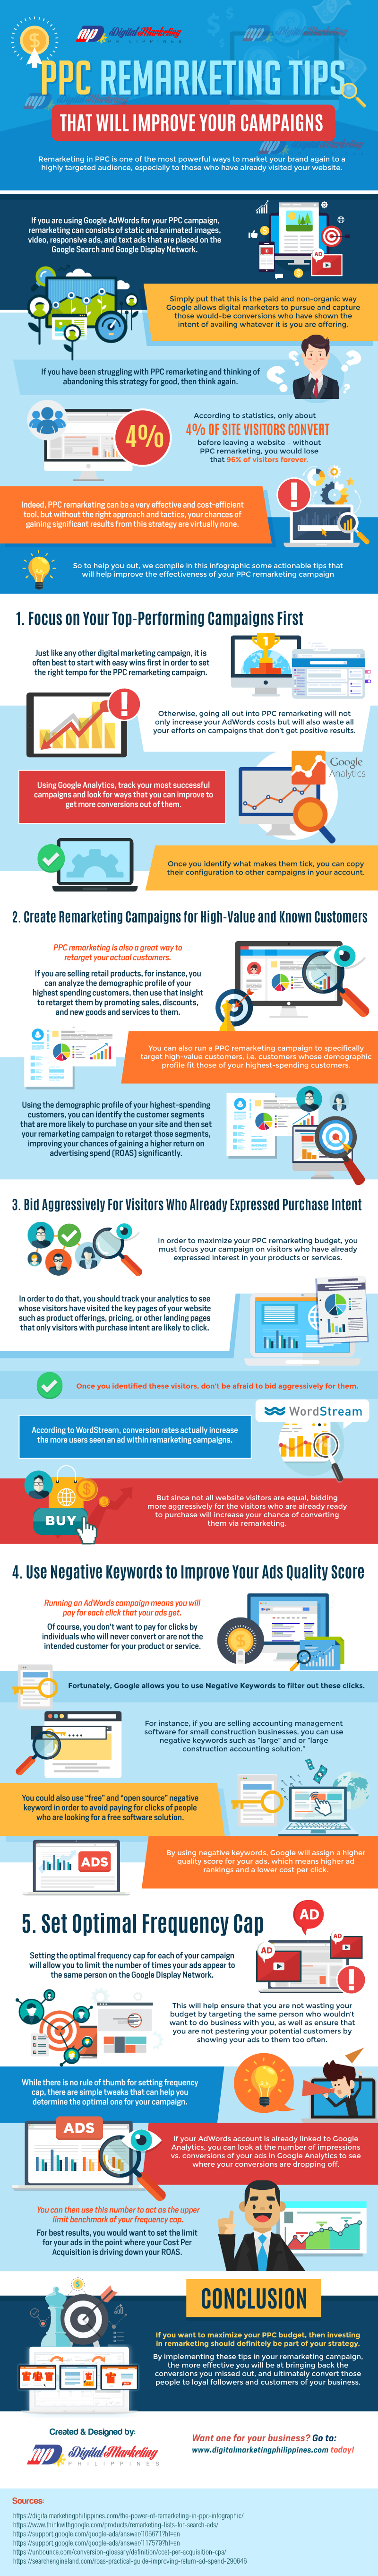 PPC Remarketing Tips That Will Improve Your Campaigns ...